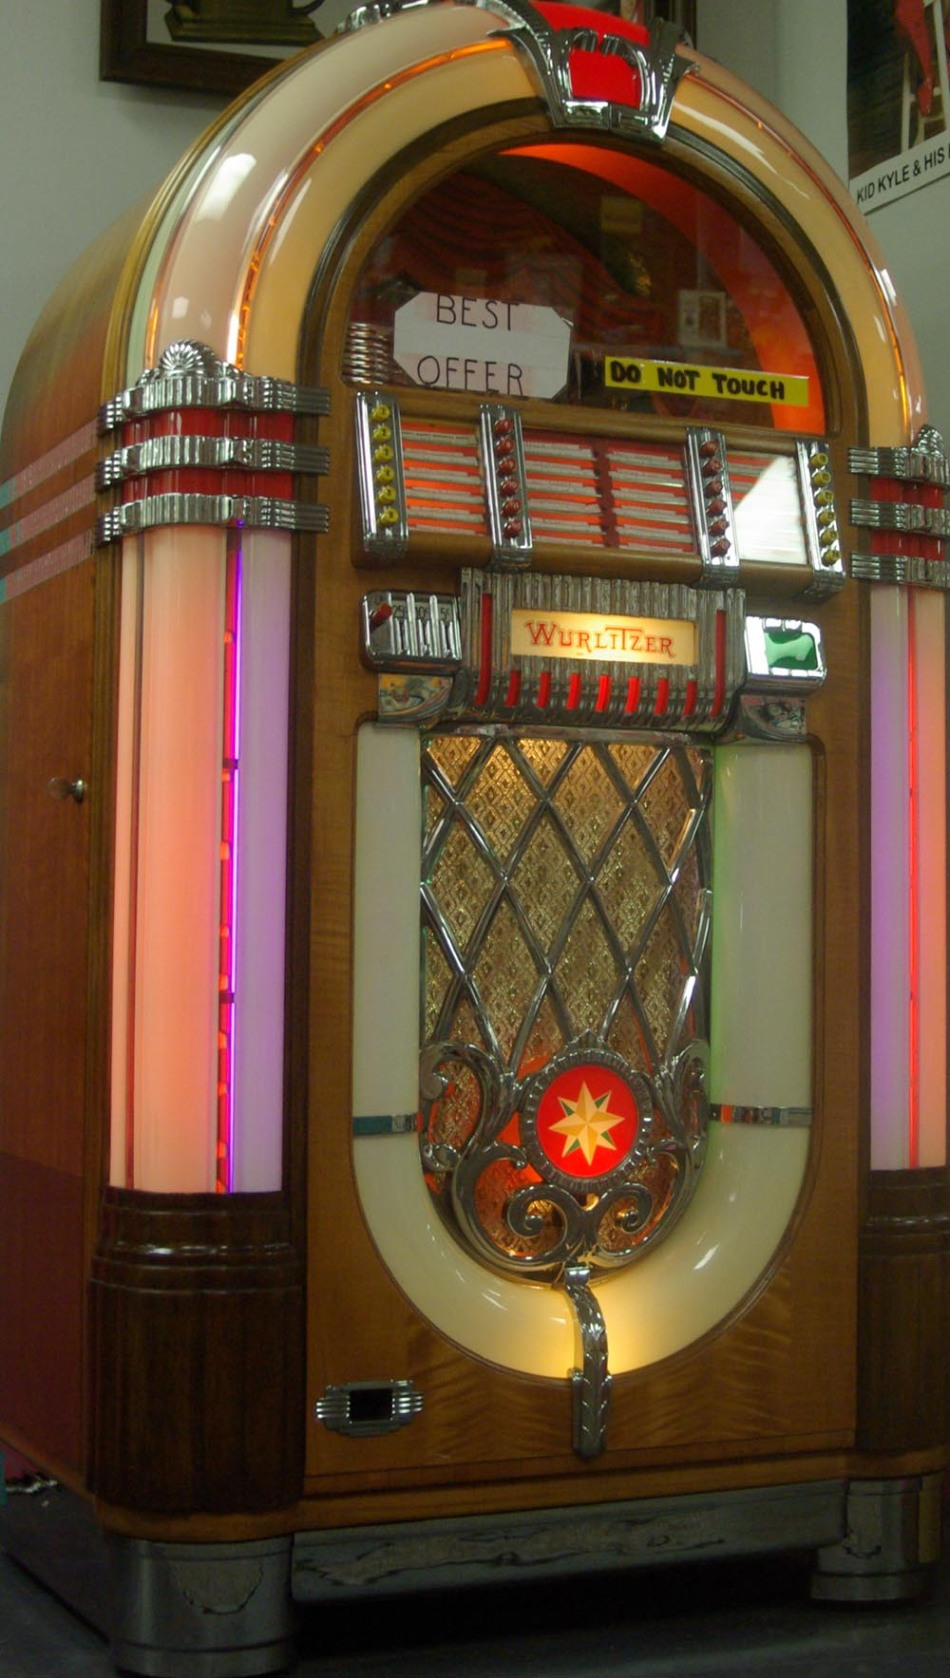 photo of jukebox